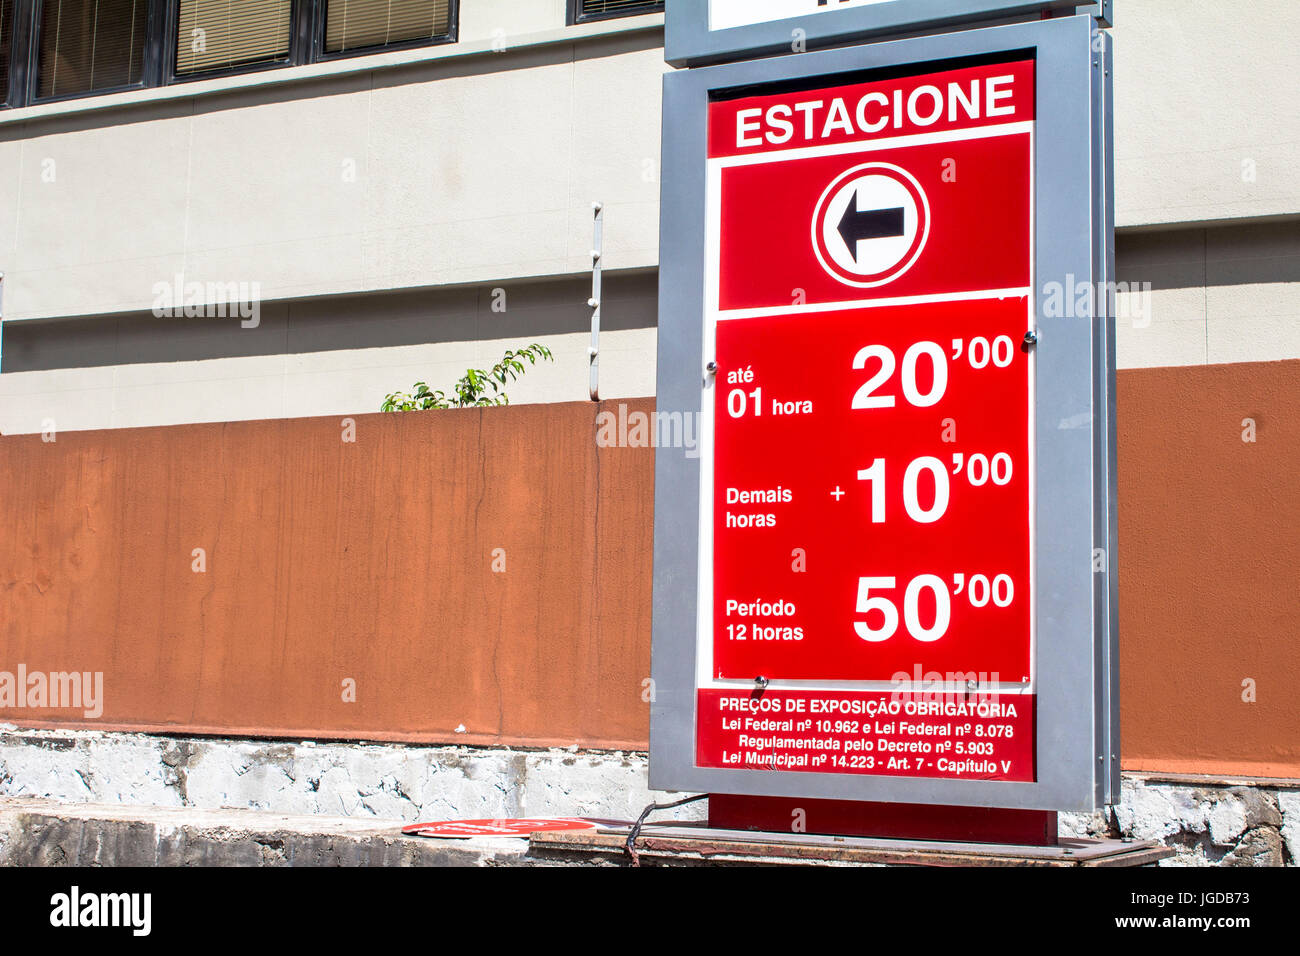 Board, values, parking, 01/02/2016, Capital, Avenida Paulista, São Paulo, Brazil. - Stock Image